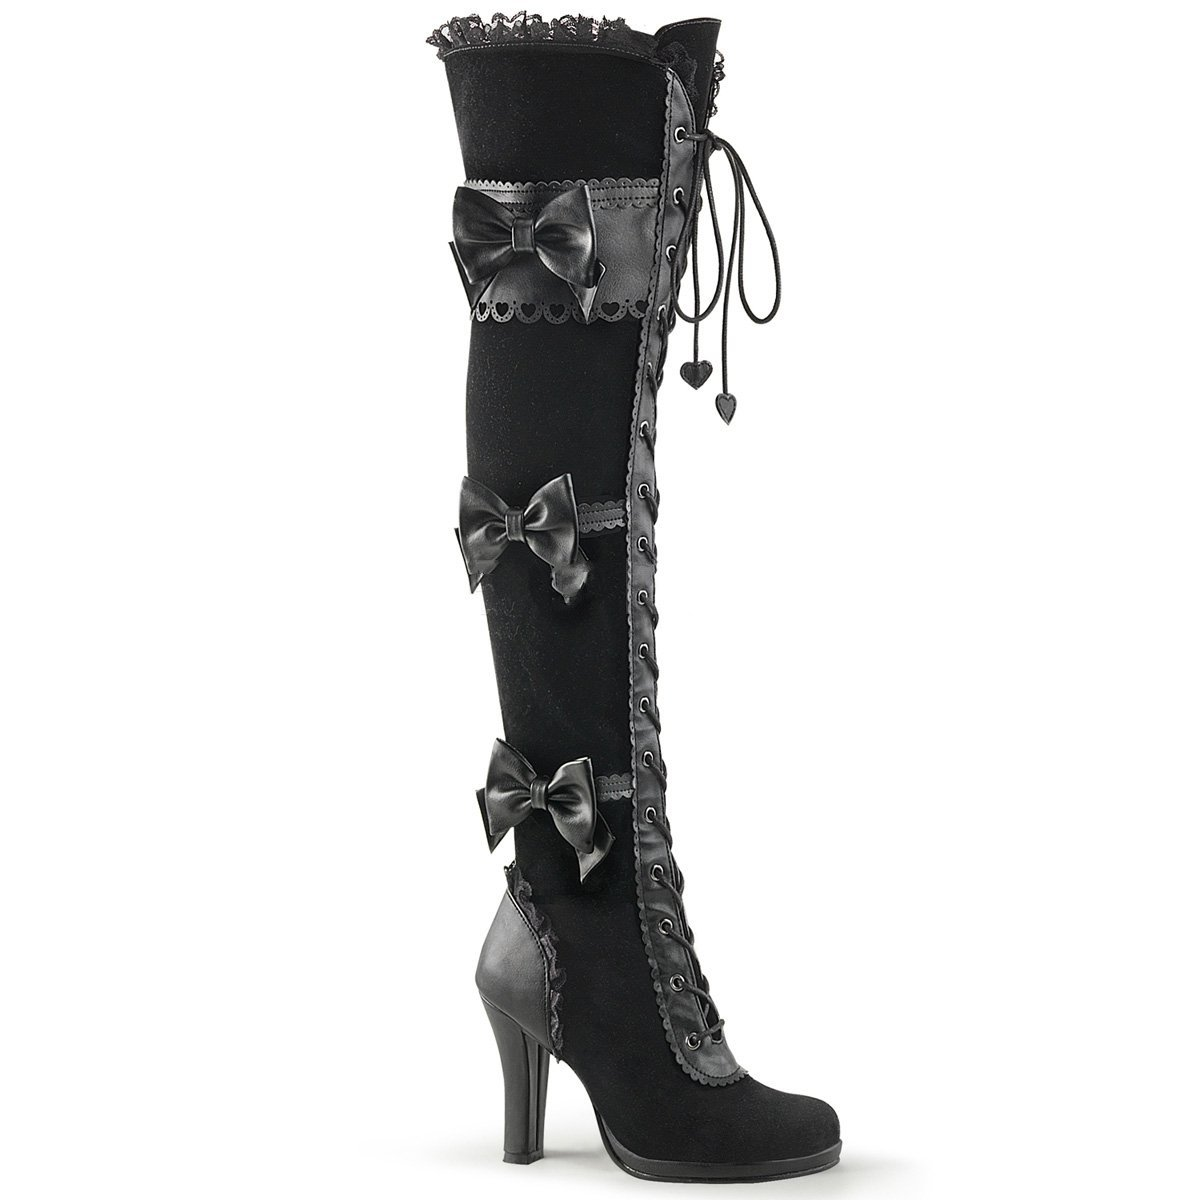 f9f864040d2 Demonia GLAM-300 Women 3 3/4 Heel, 1/2 Platform Goth Lolita Lace-up Front  Over-The-Knee Boot